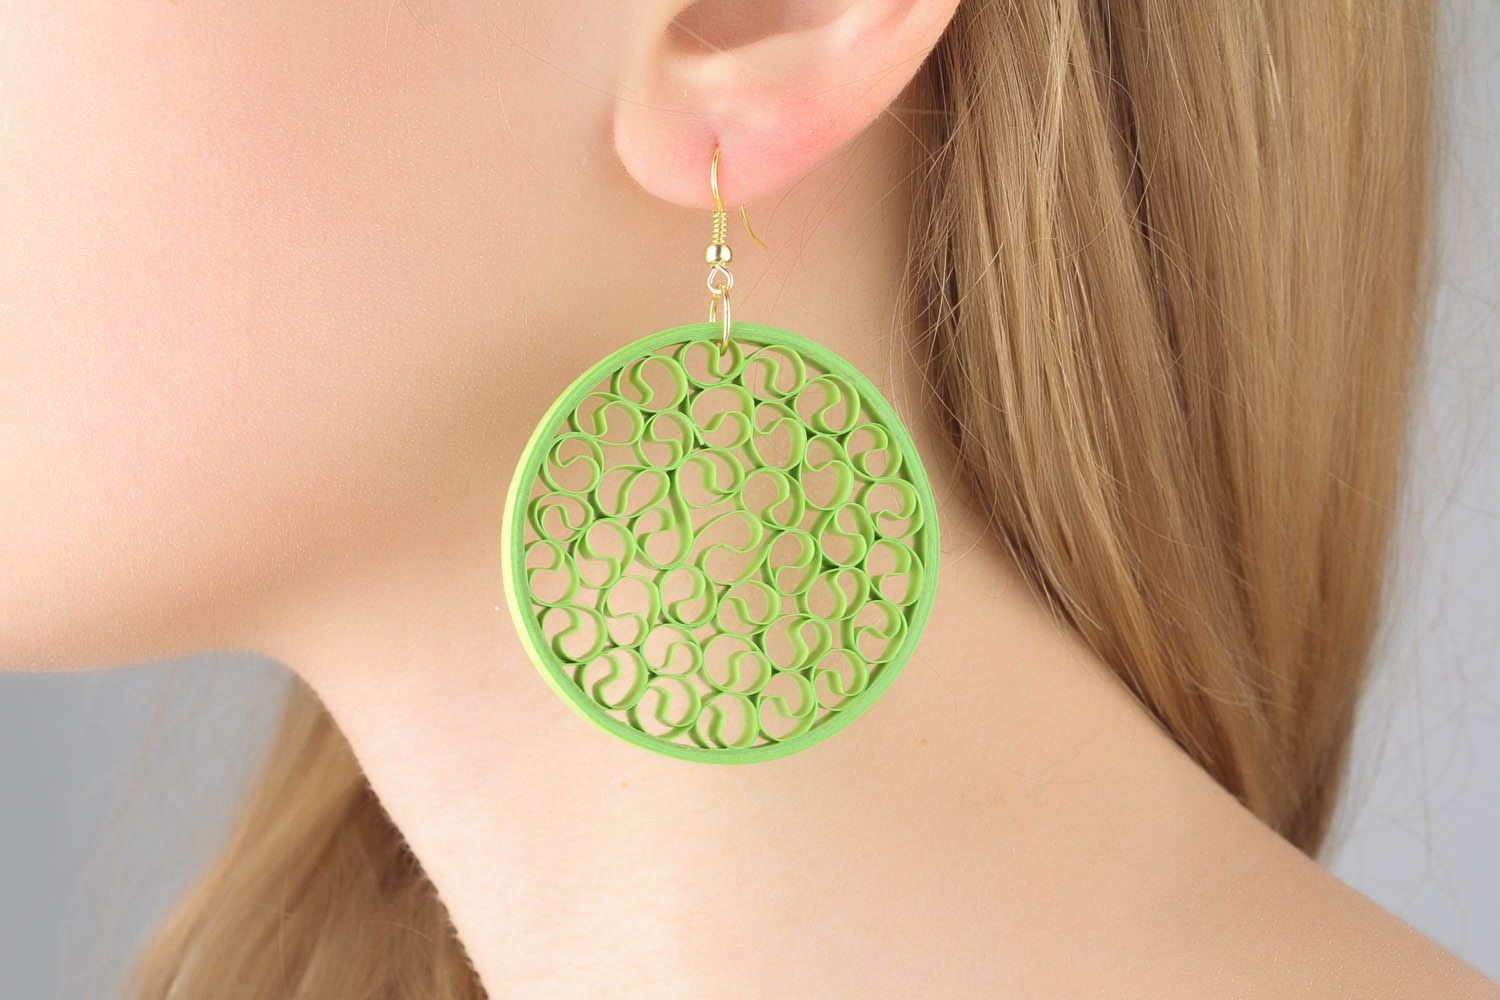 Openwork earrings made using quilling techniques photo 1